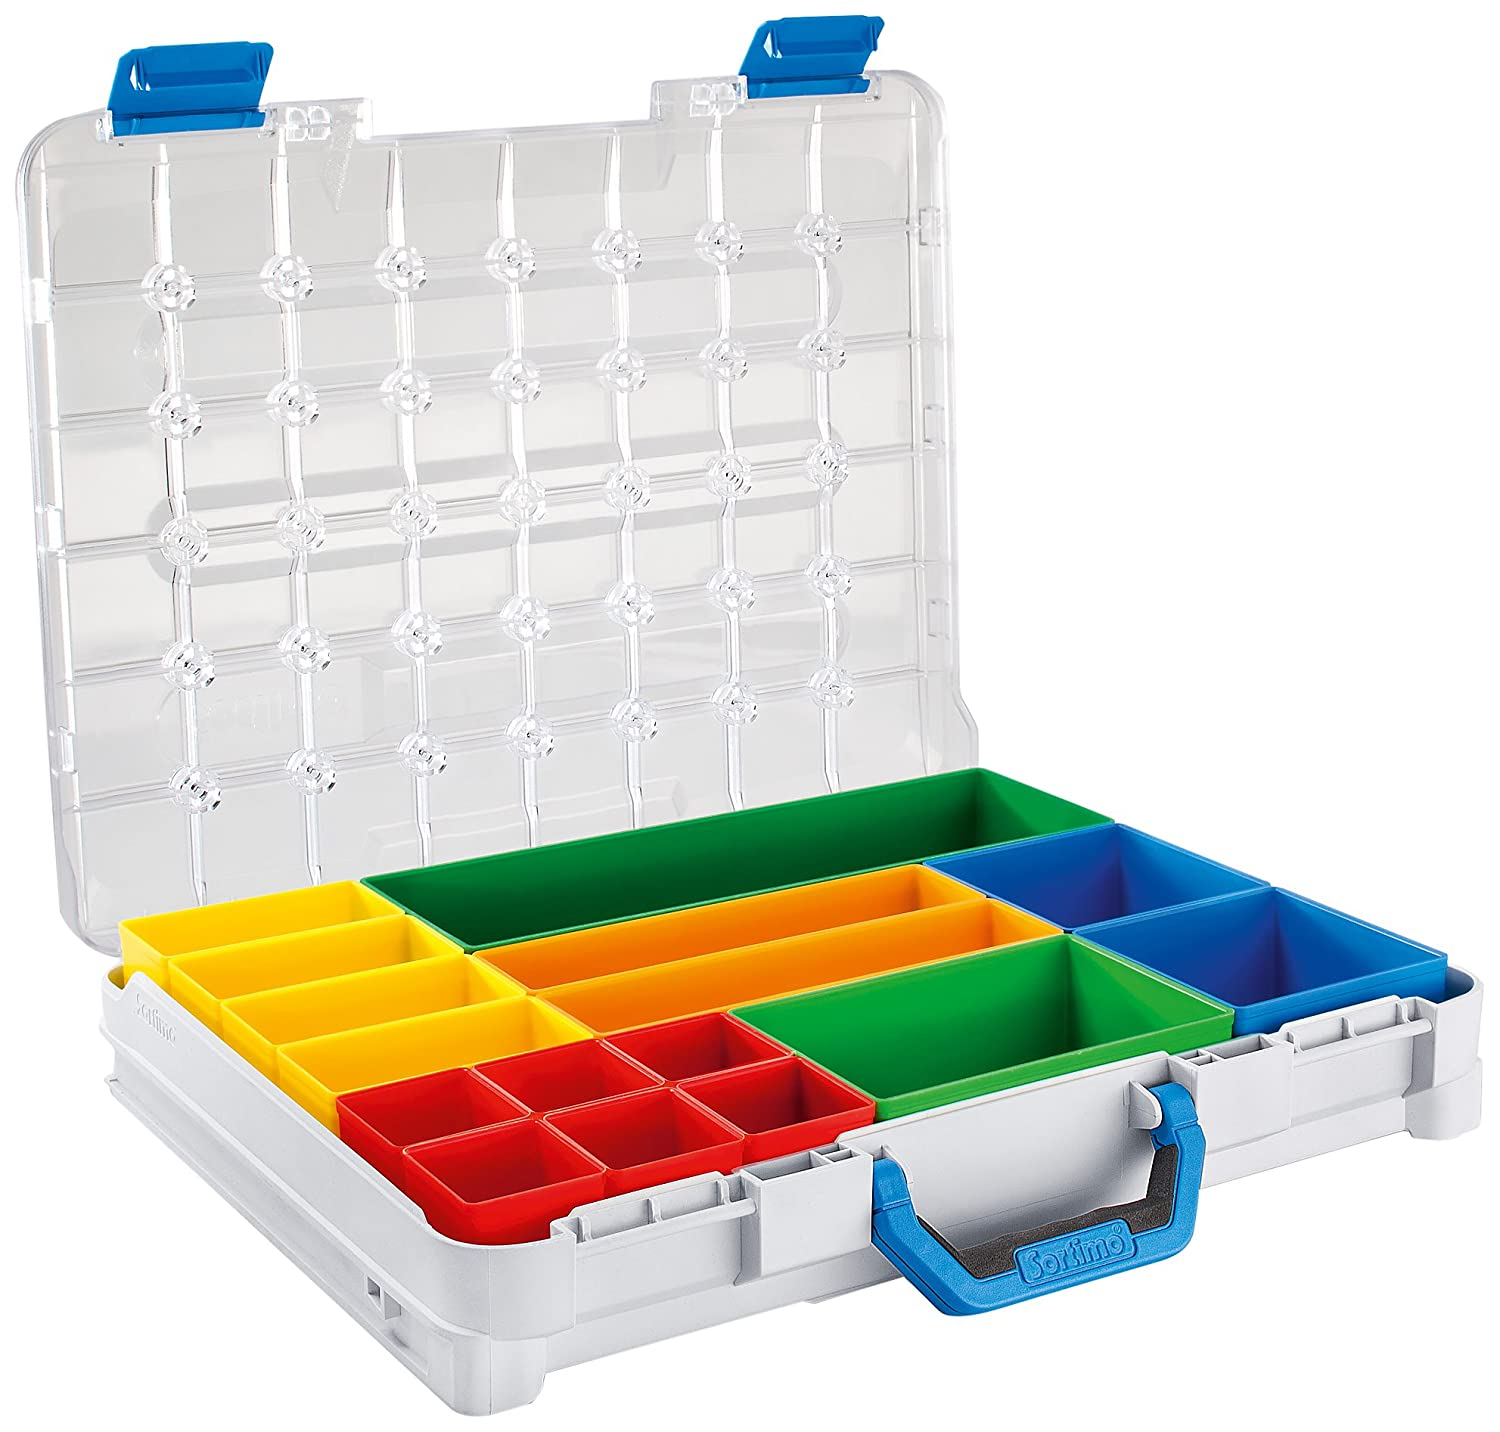 malette rangement. Black Bedroom Furniture Sets. Home Design Ideas